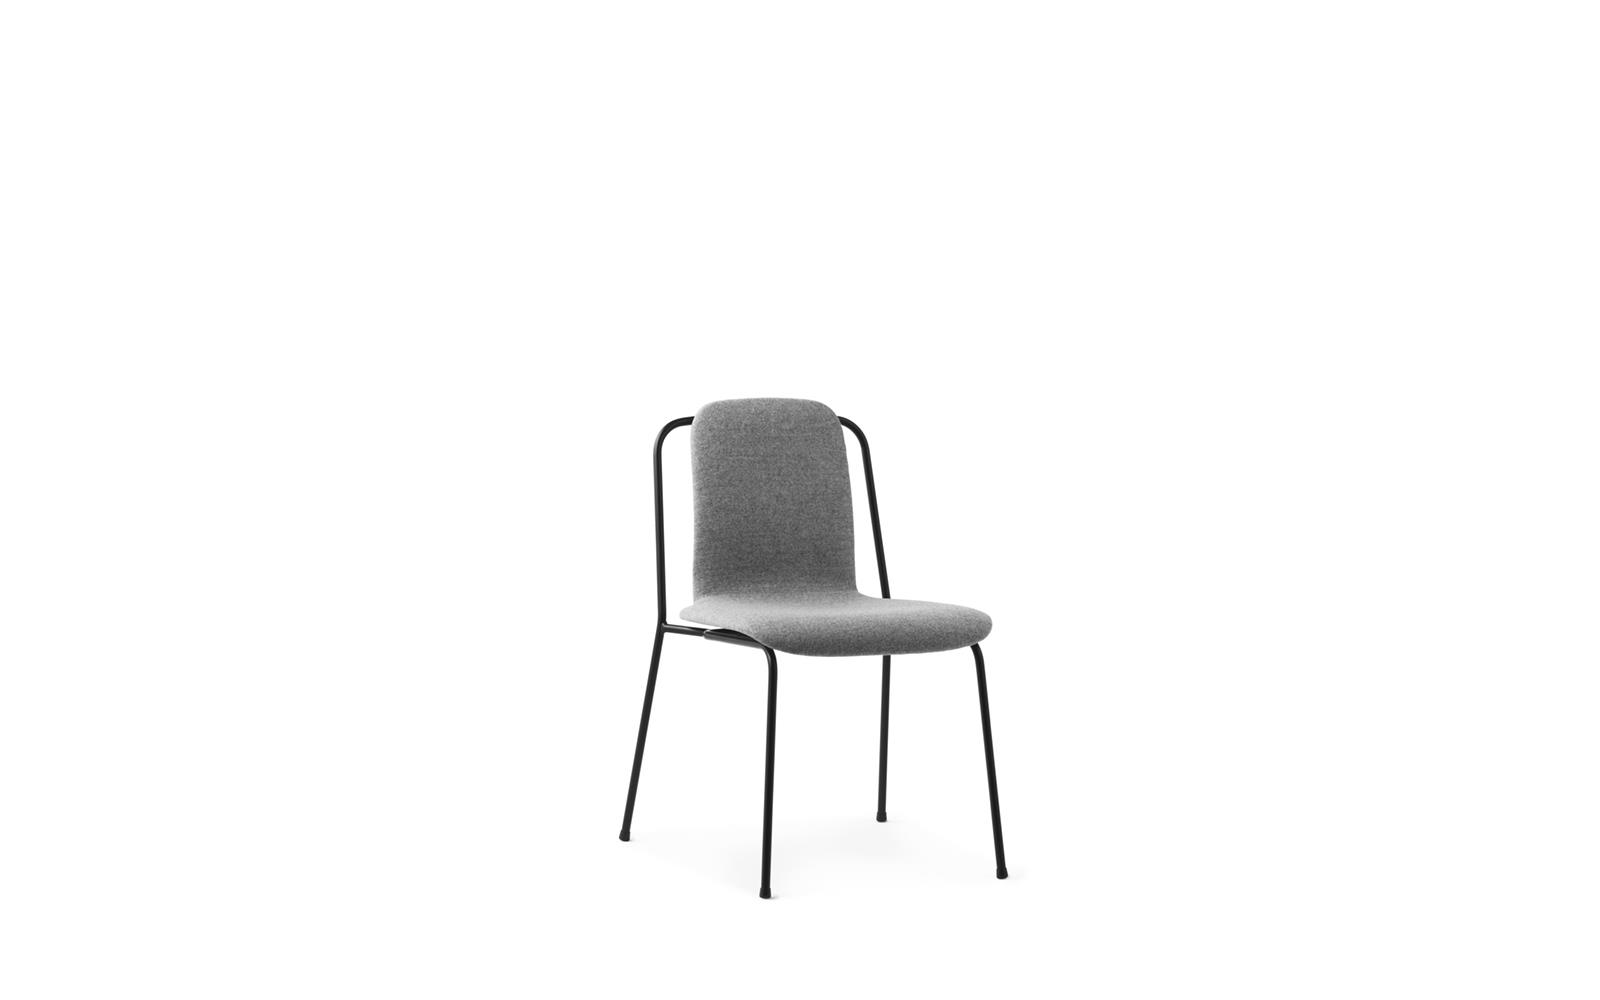 Studio Chair Full Upholstery Black Steel1